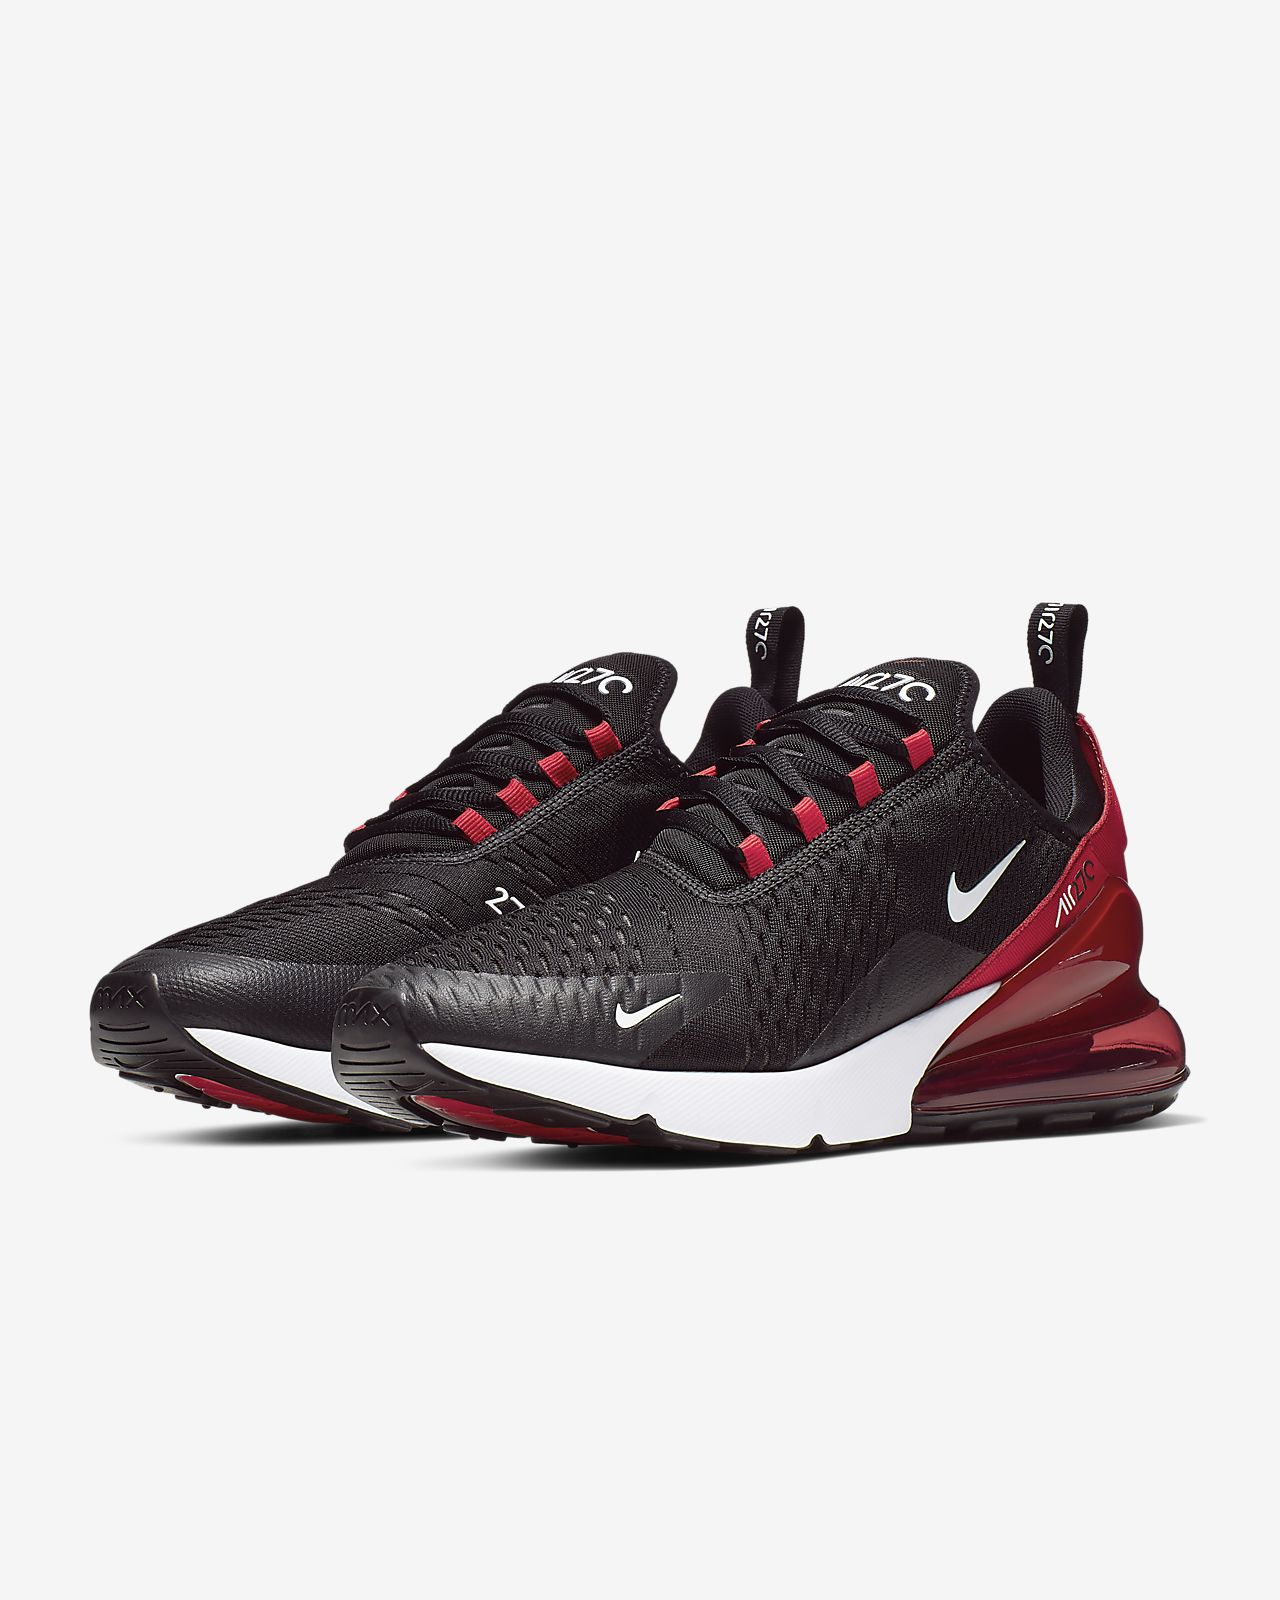 76729cd1f Nike Air Max 270 Men s Shoe. Nike.com GB